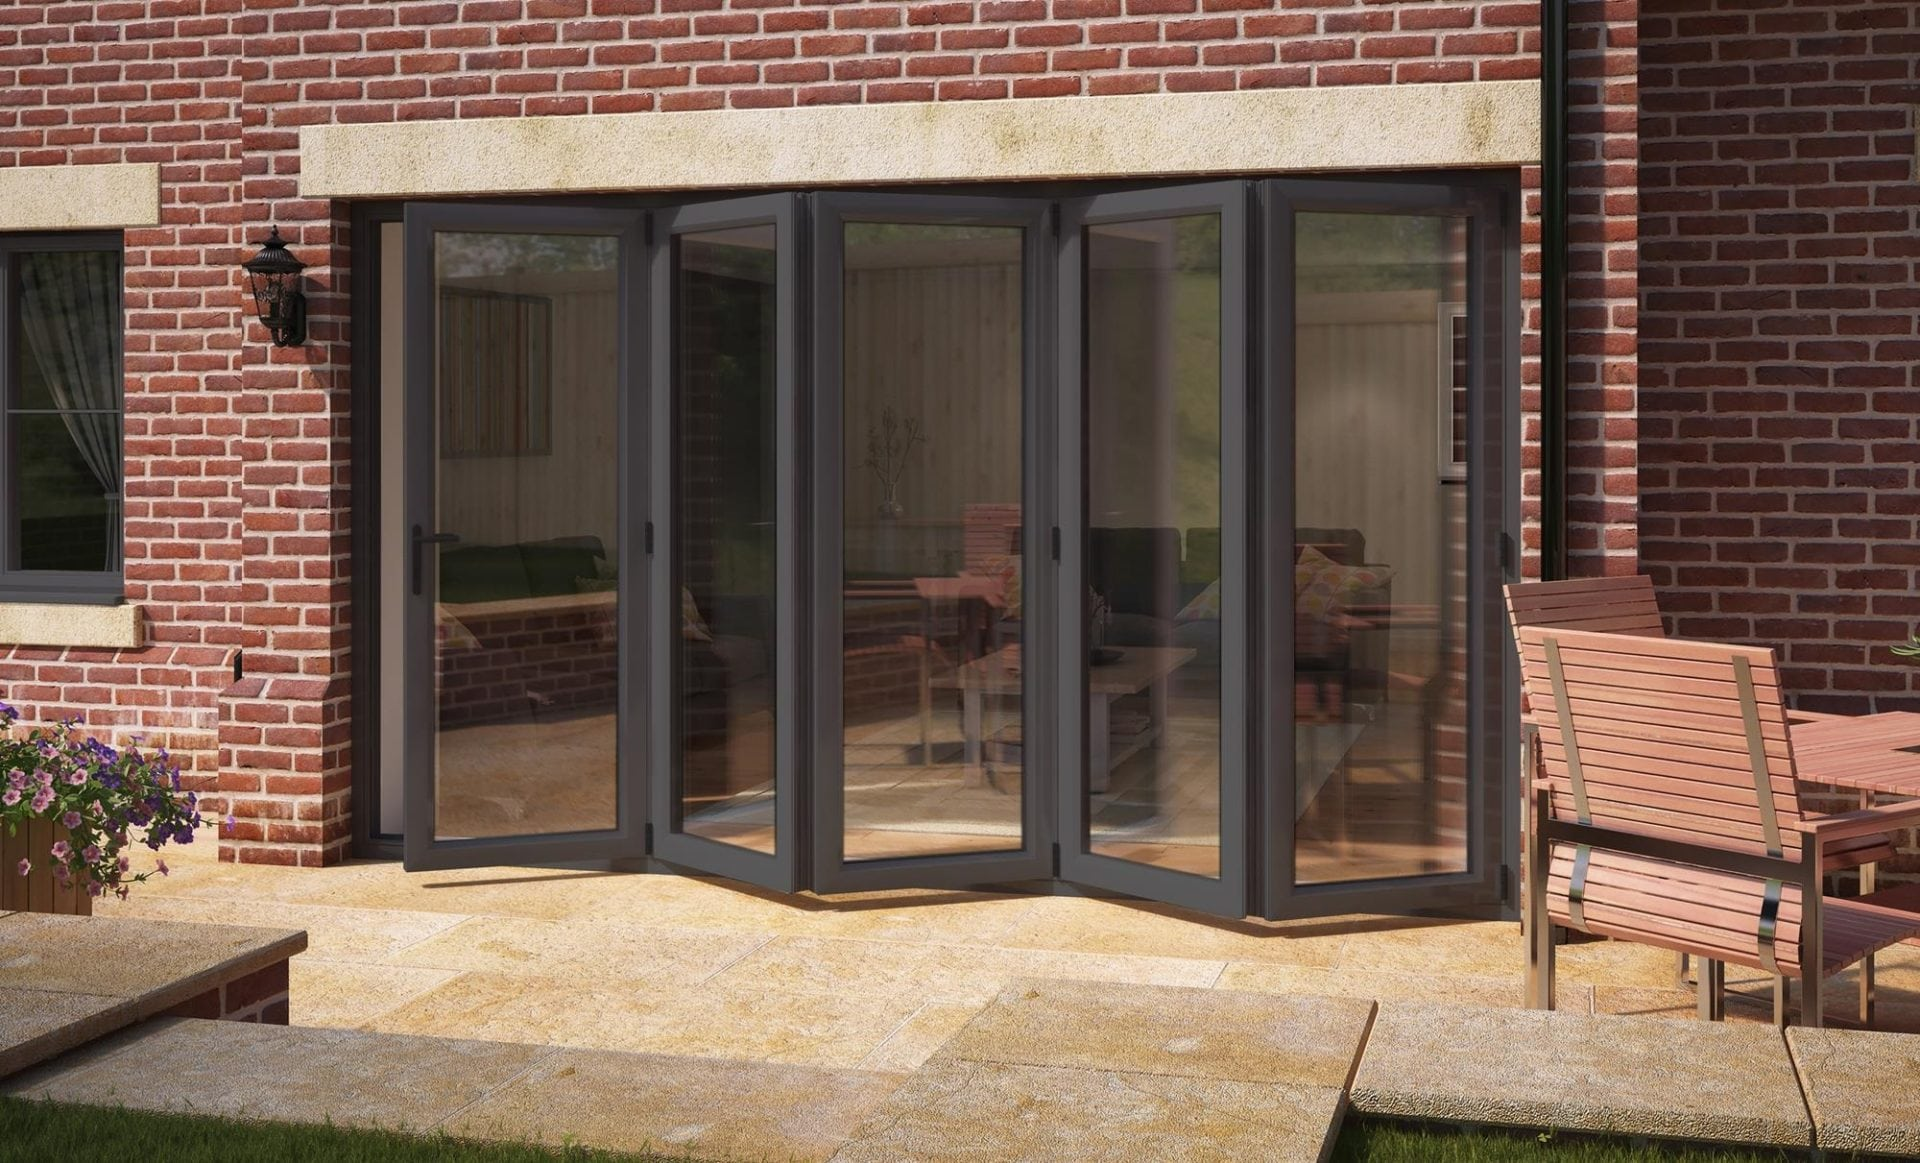 Aspect UPVC Bi-fold Doors - Grey & White High Security